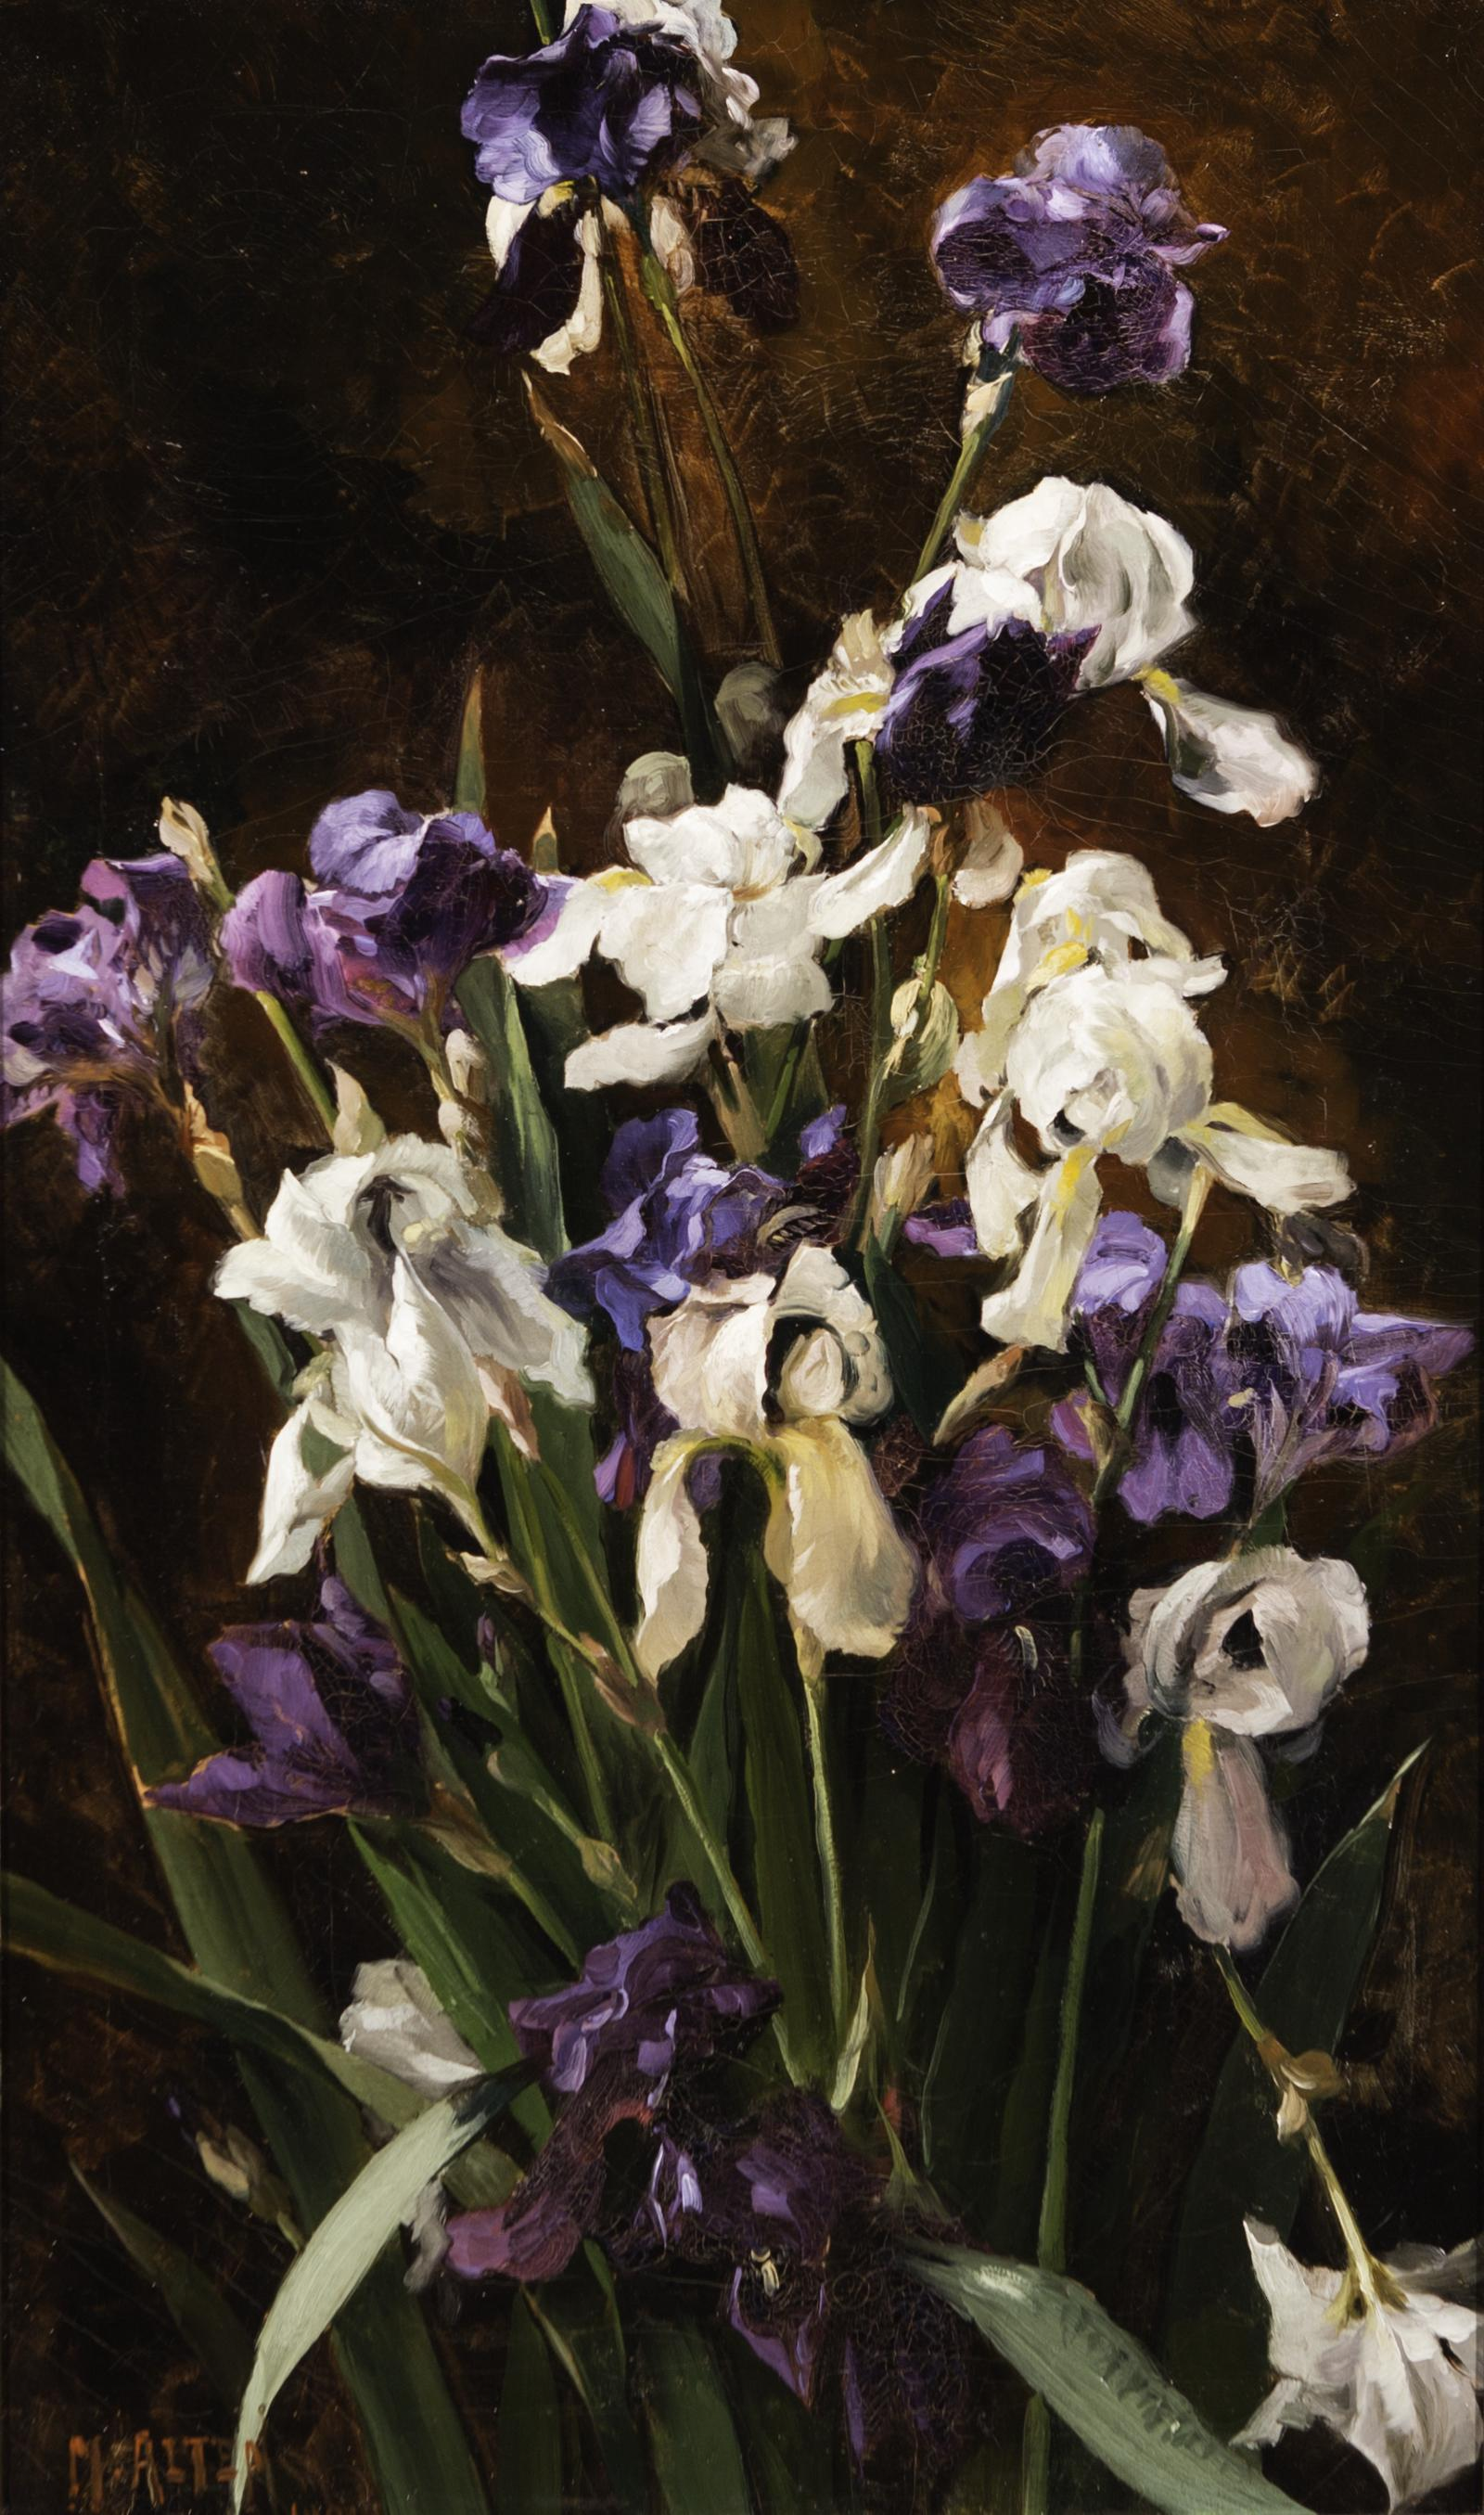 Purple and white irises against a dark black and brown background.